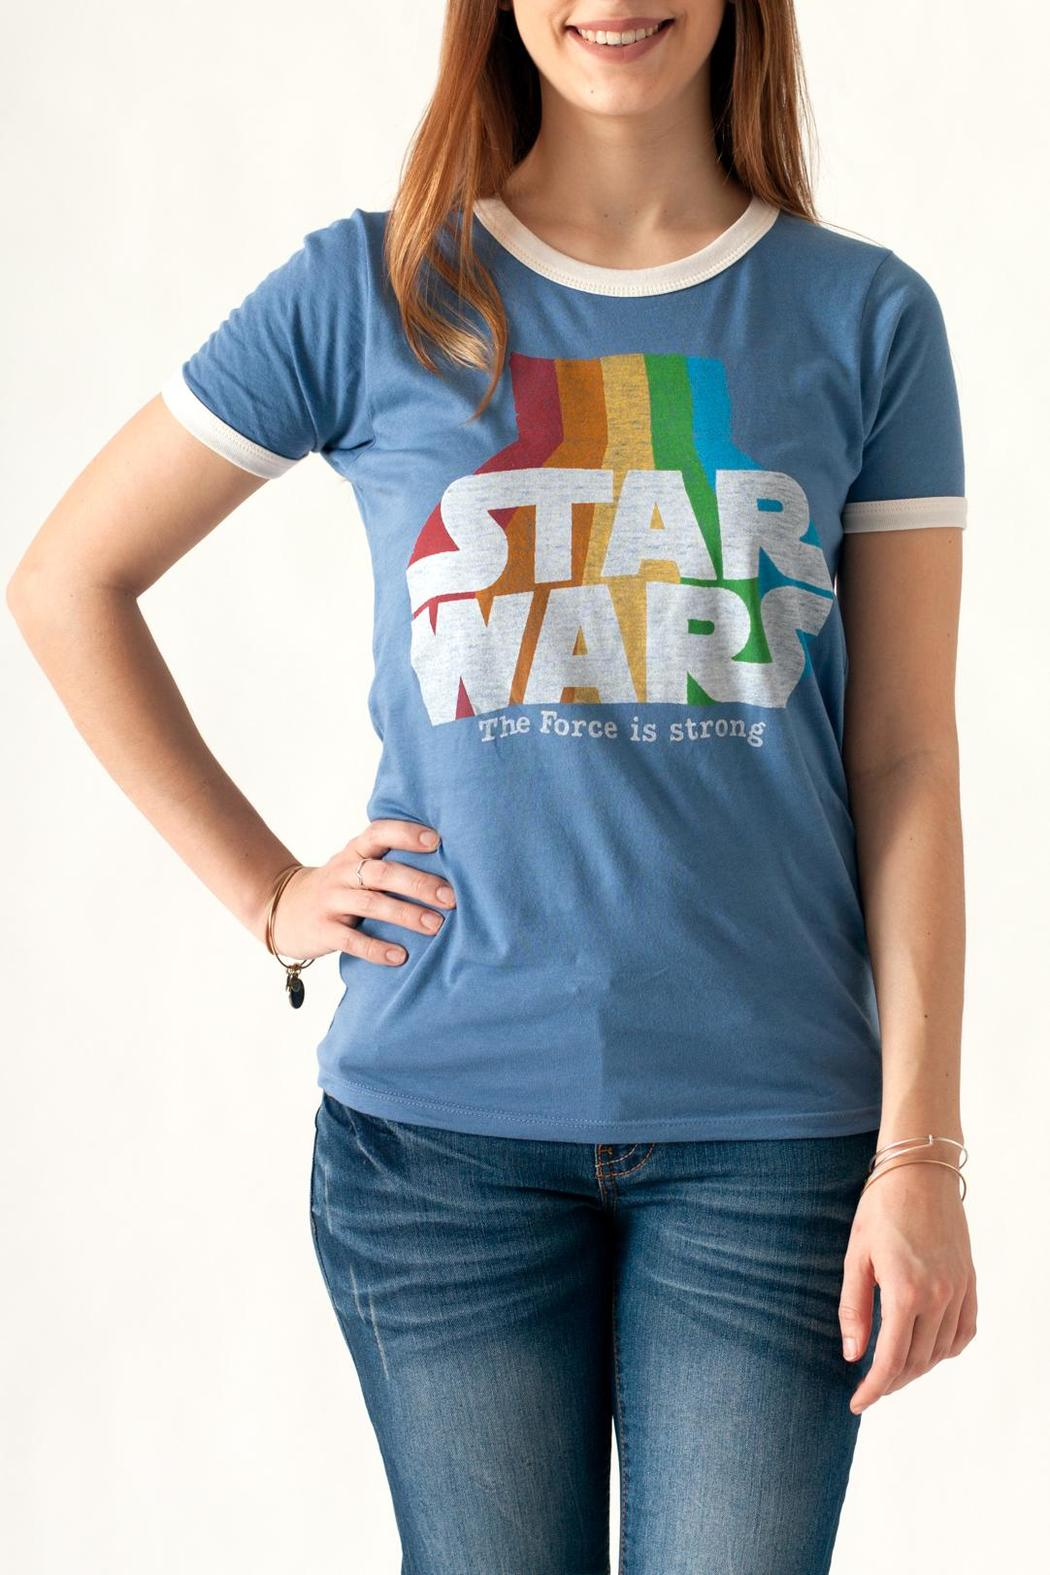 Junkfood Star Wars Ringer Tee From Philadelphia By May 23